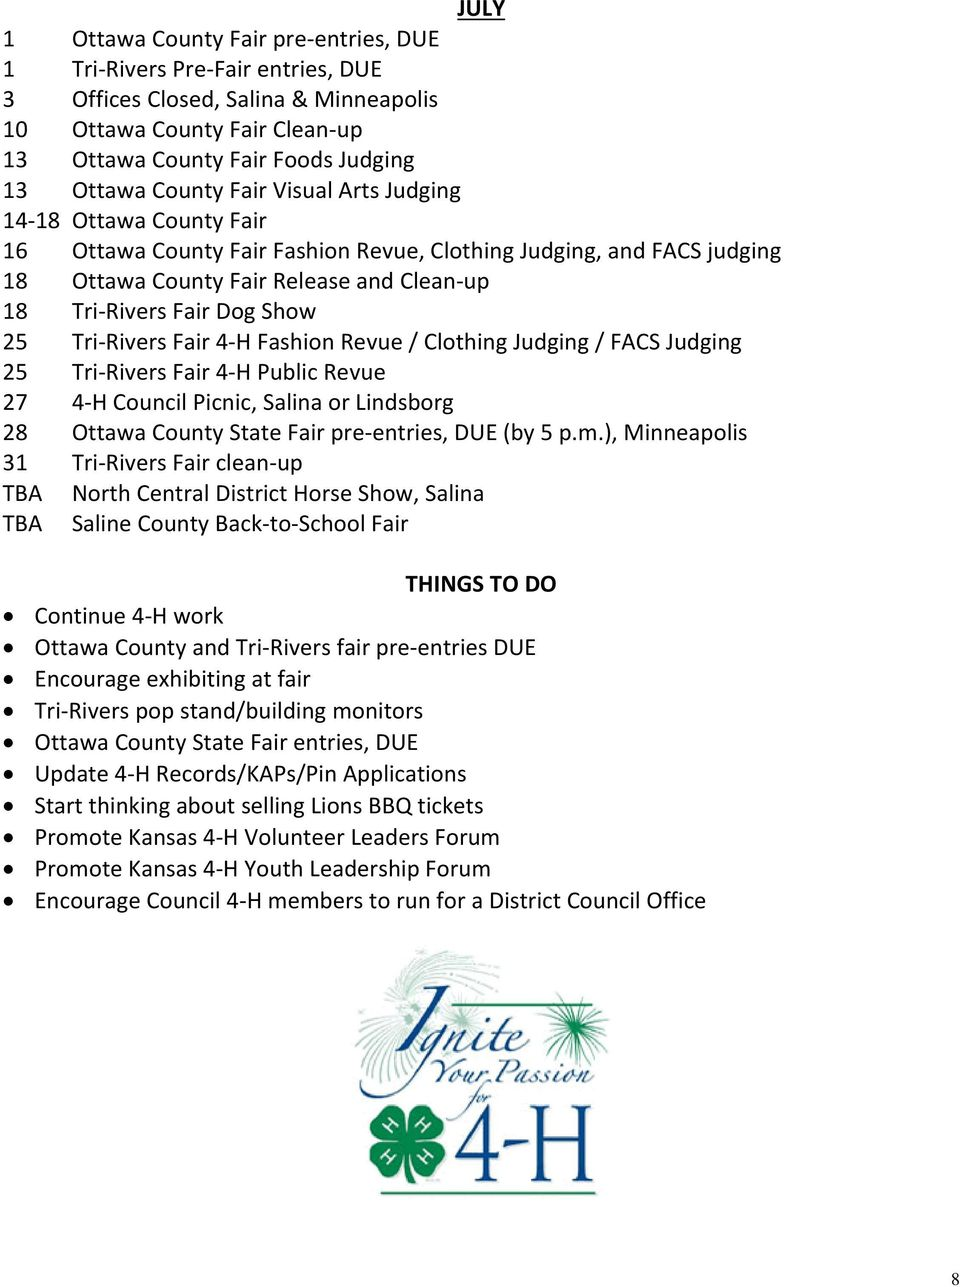 25 Tri Rivers Fair 4 H Fashion Revue / Clothing Judging / FACS Judging 25 Tri Rivers Fair 4 H Public Revue 27 4 H Council Picnic, Salina or Lindsborg 28 Ottawa County State Fair pre entries, DUE (by